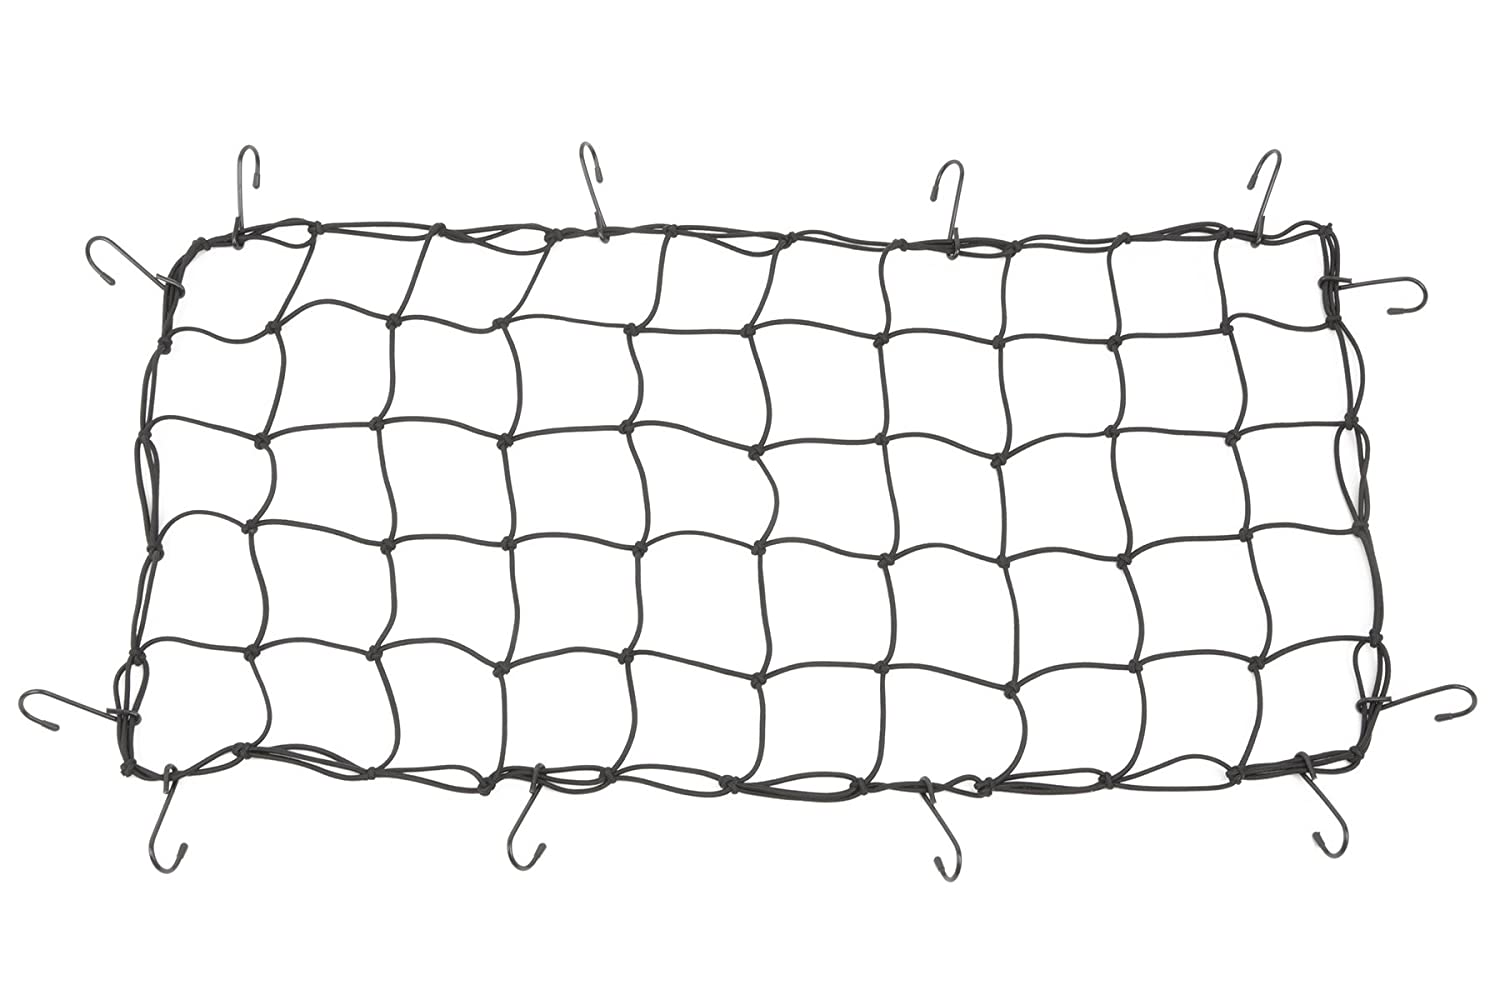 Powertye 15 x 30 Mfg Cargo Net Made with Premium Latex Bungee Material 3x3 Mesh and Rubber-Tipped Super Strong Metal Hooks Black 3x3 Mesh and Rubber-Tipped Super Strong Metal Hooks 4333199472